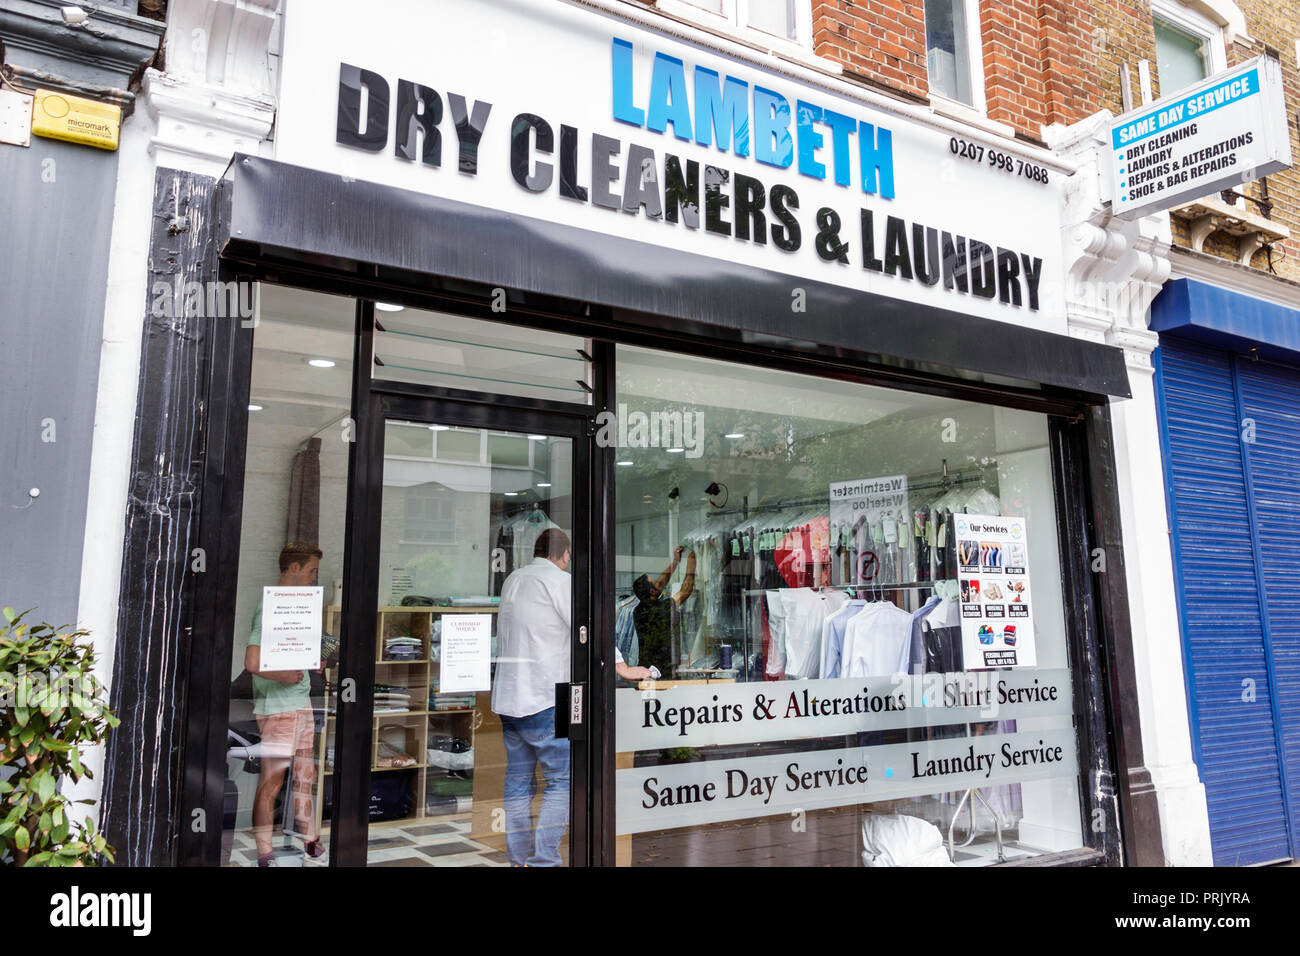 London England United Kingdom Great Britain Lambeth North Kennington Road Lambeth Dry Cleaners and Laundry exterior storefront repairs alterations sam - Stock Image